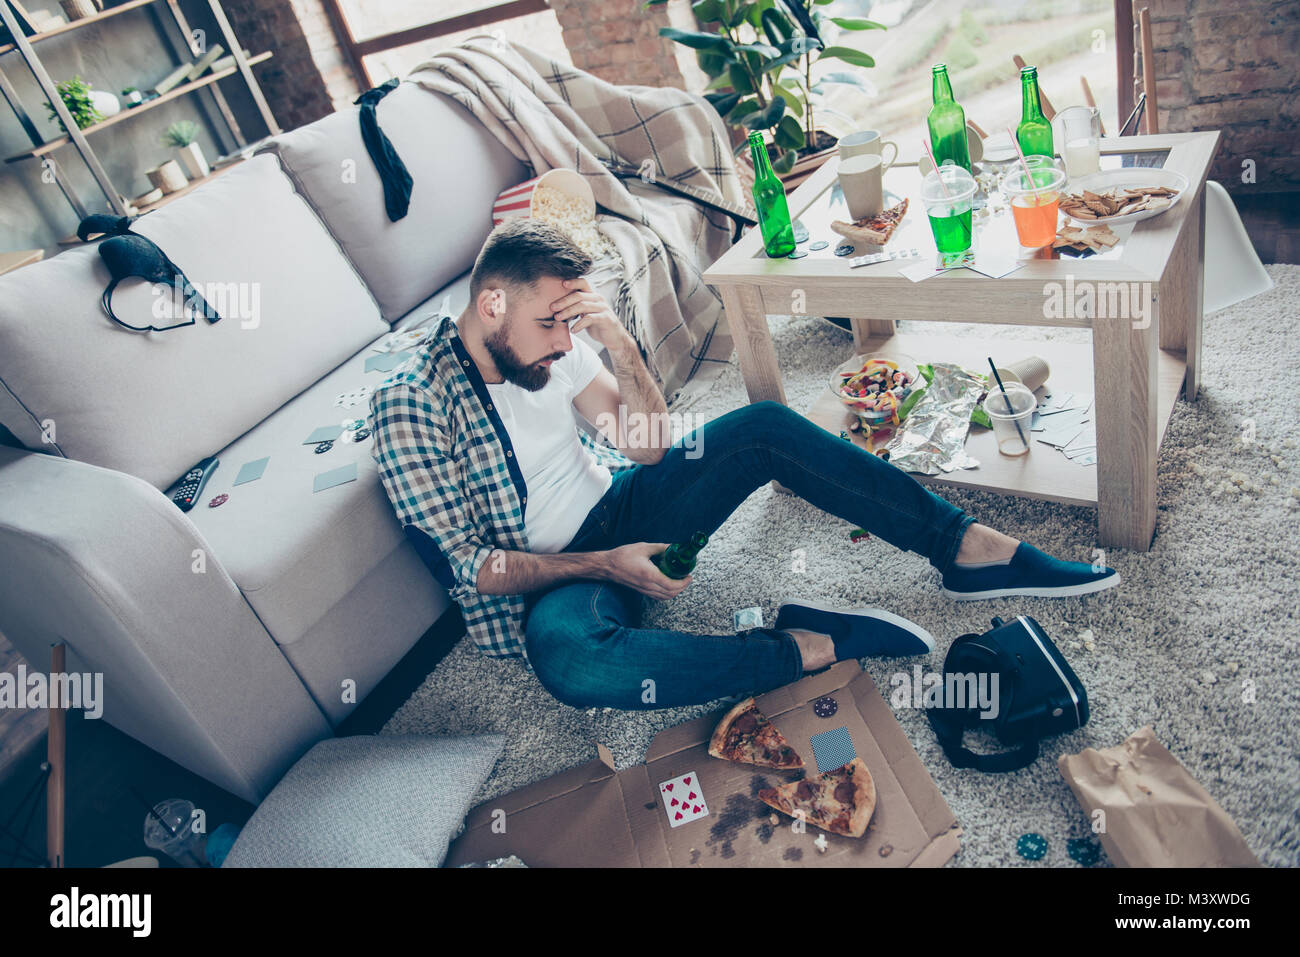 I don't remember the last night! Sick ill feeling unwell bearded clothed in casual outfit is touching his forehead - Stock Image